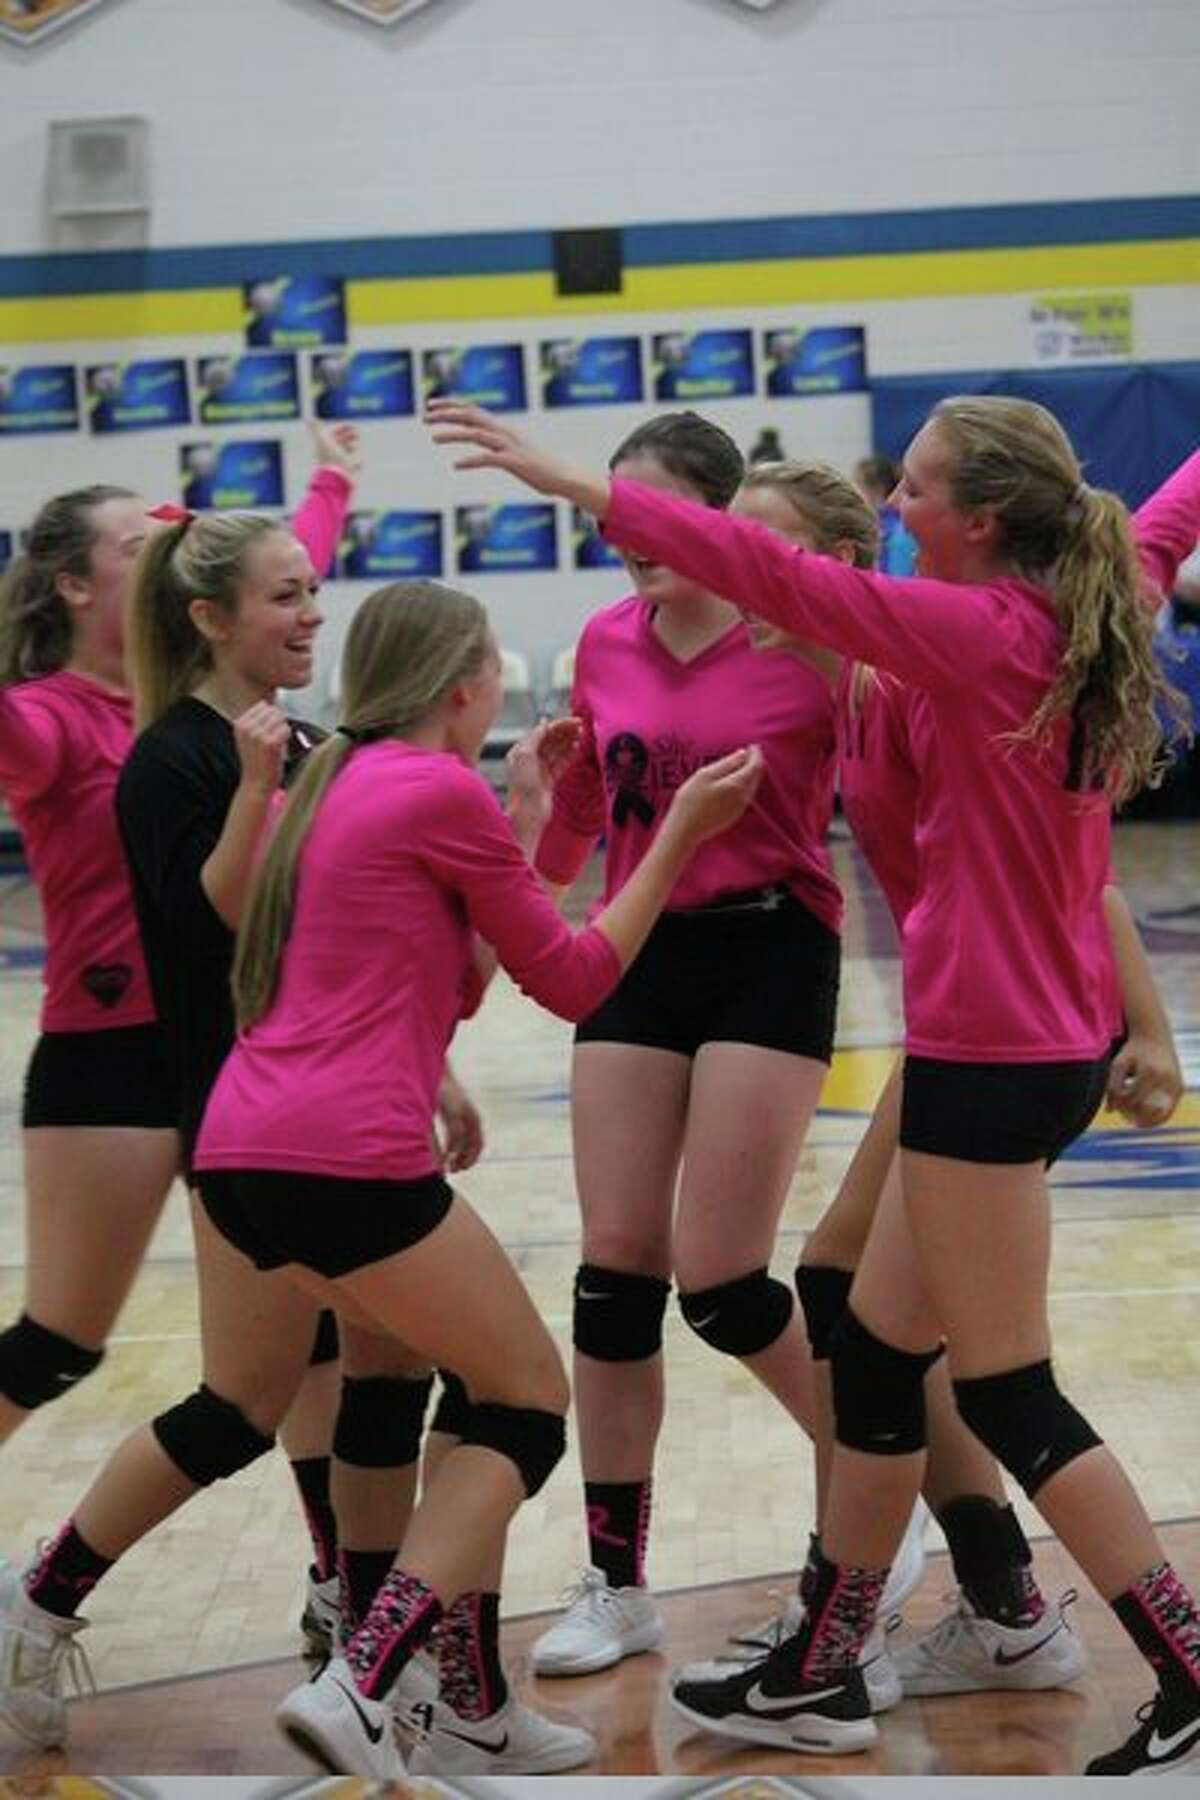 Evart volleyball players celebrate a point during the regular season. (Herald Review file photo)